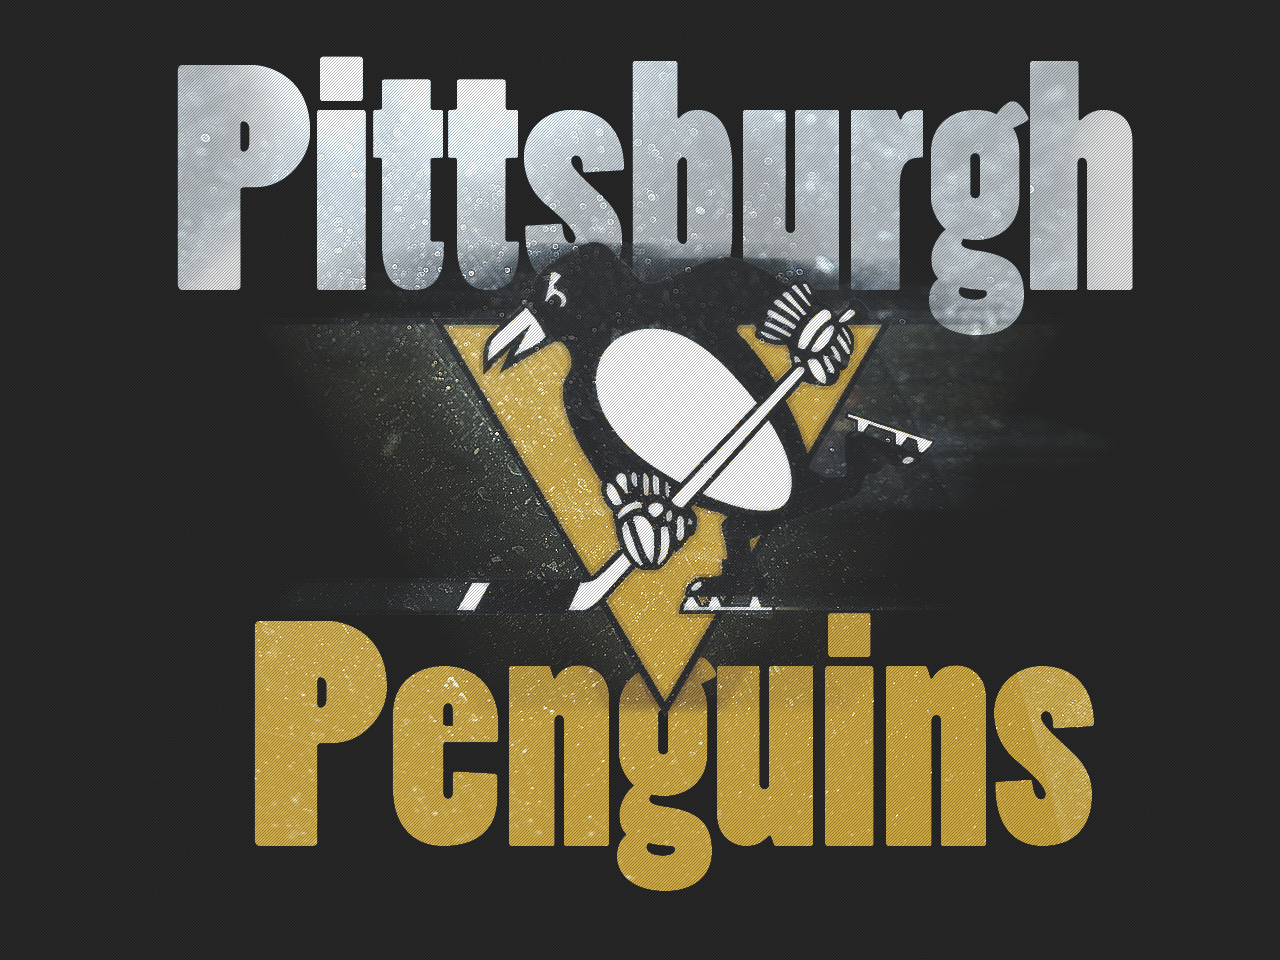 wallpaper for computer pittsburgh penguins | Free Download Pittsburgh Penguins Logo Image Picture Code HD Wallpaper